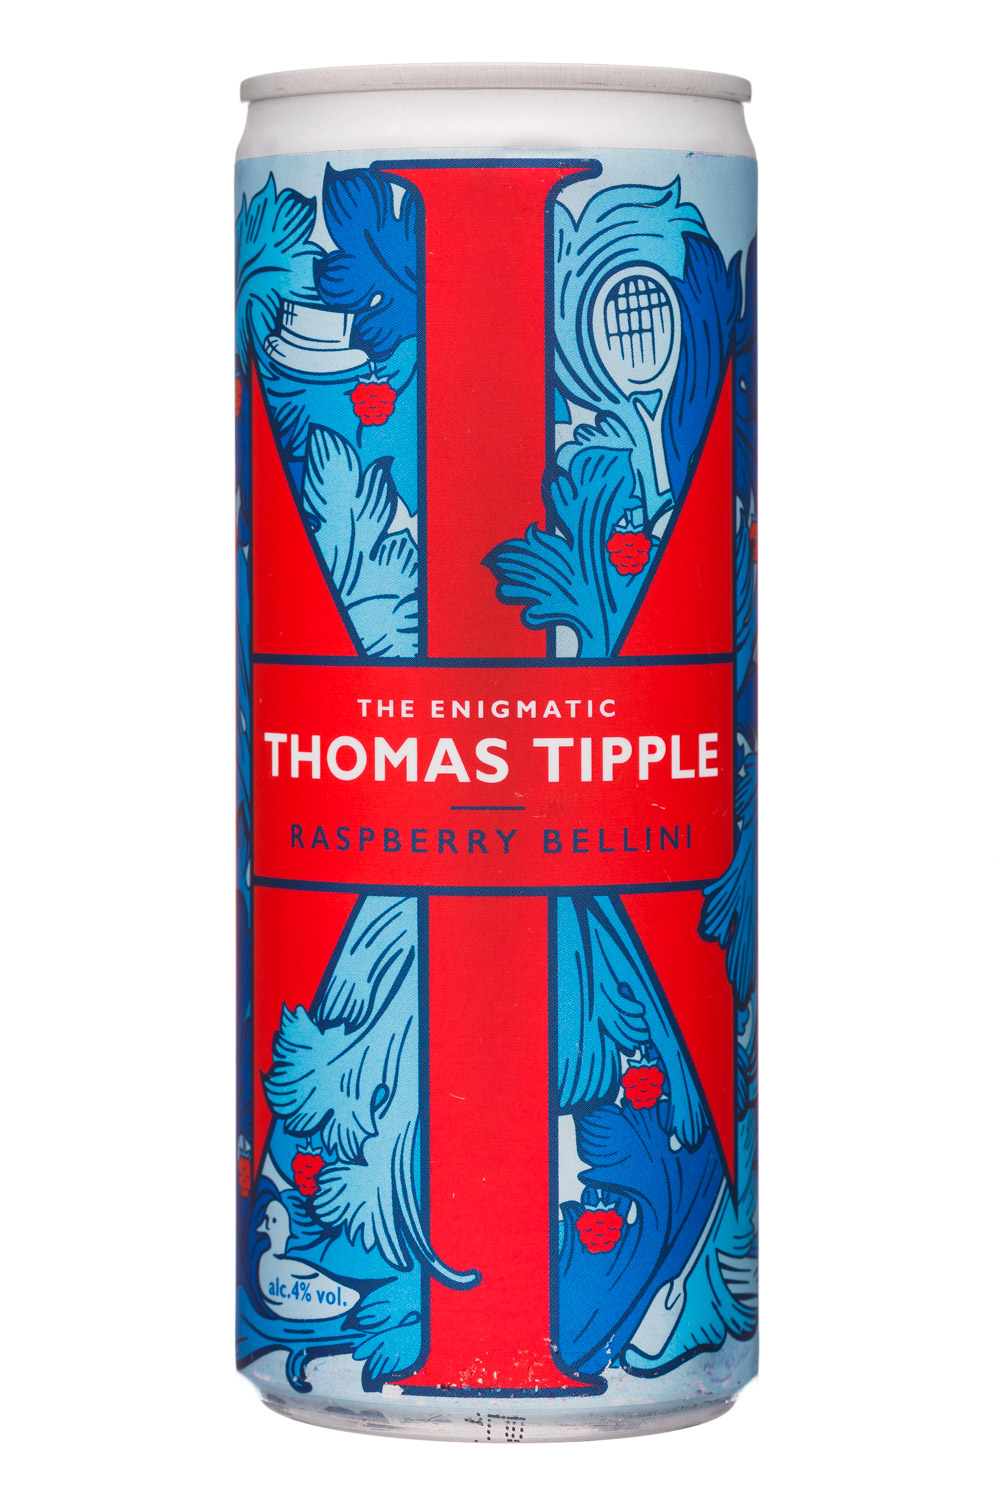 Thomas Tipple: ThomasTipple-12oz-RaspberryBellini